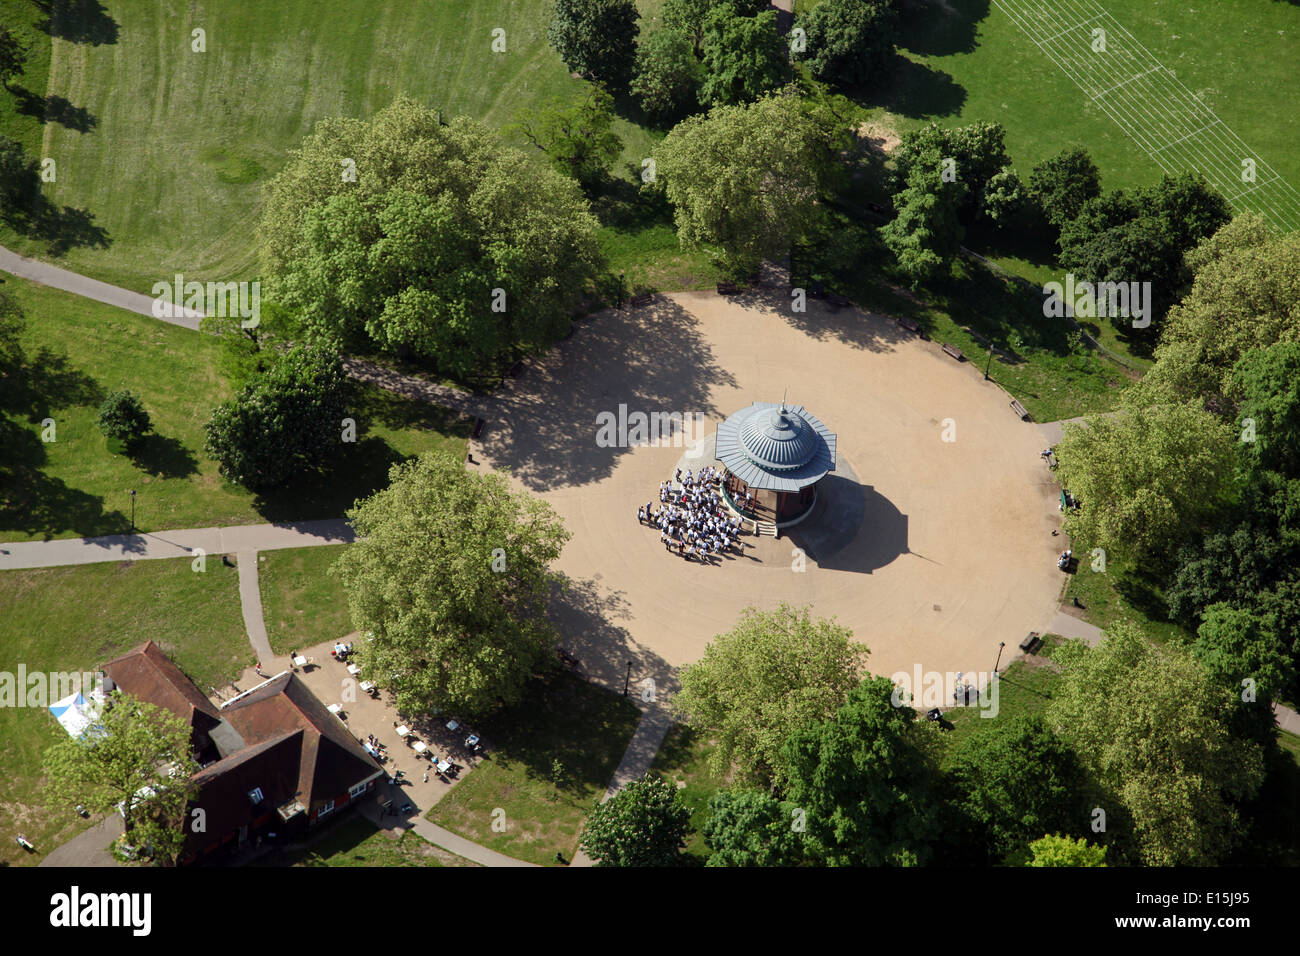 aerial view of the bandstand on Clapham Common in south west London - Stock Image